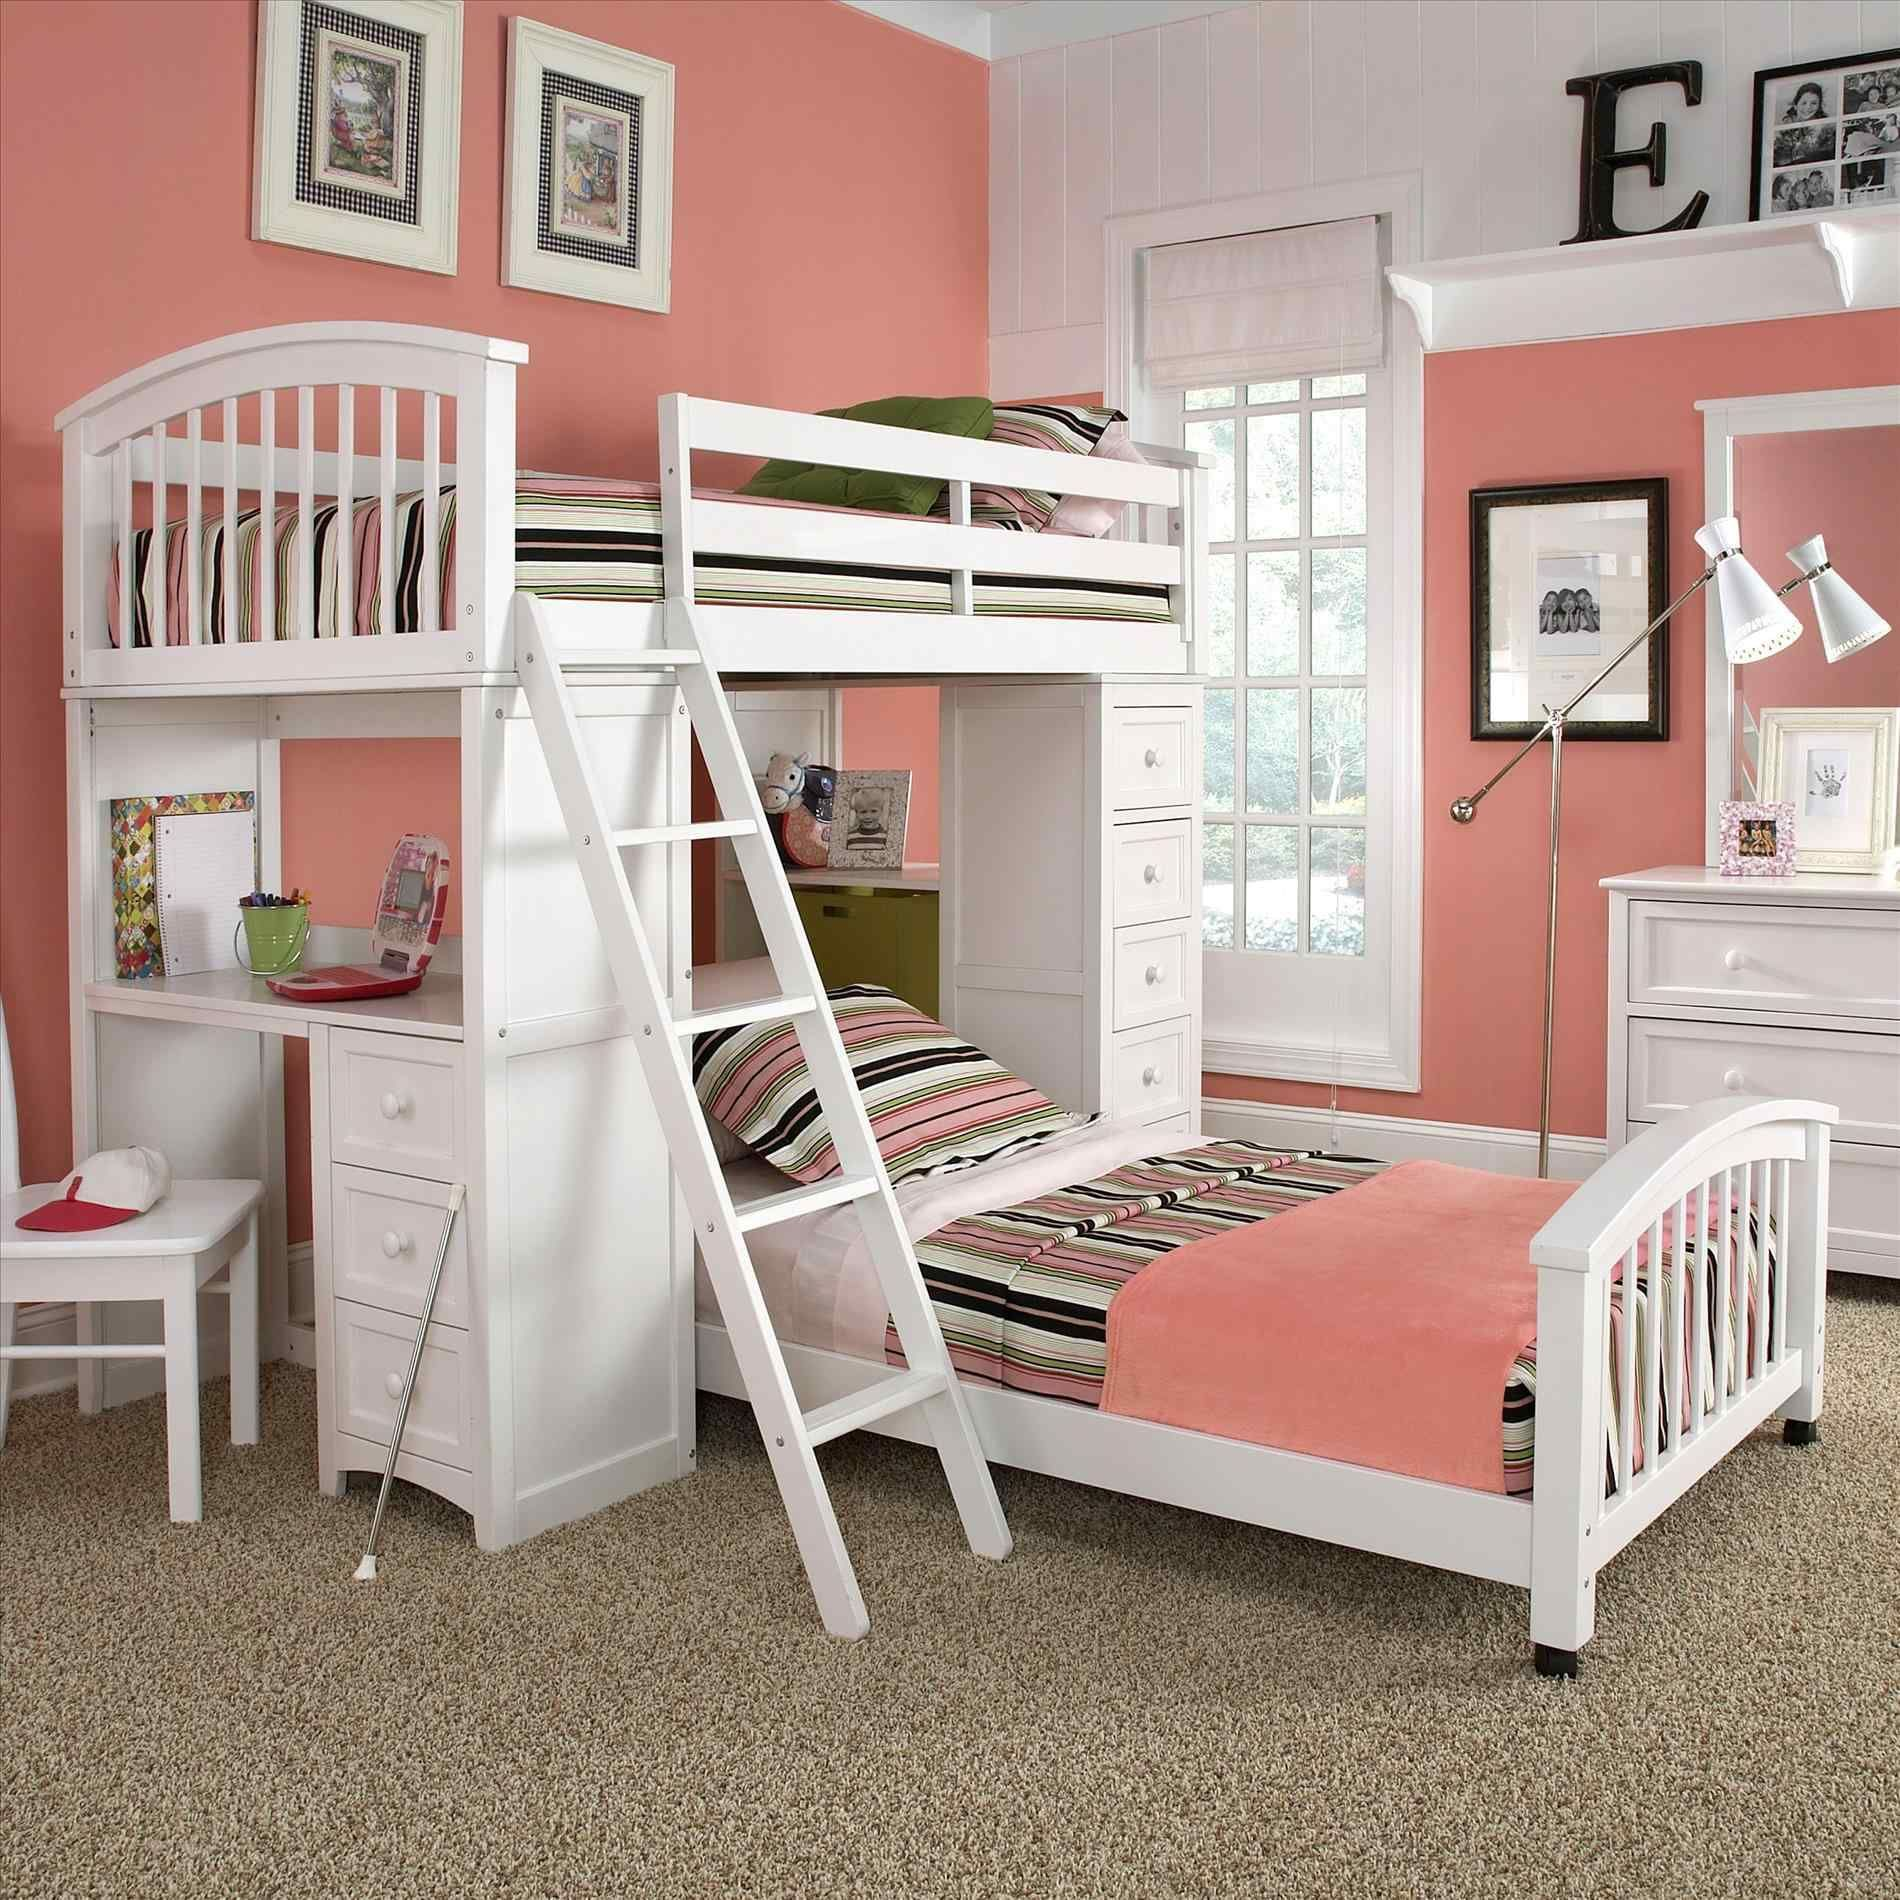 New Bedroom Designs For Teenagers With 2 Beds At Homelivings Info